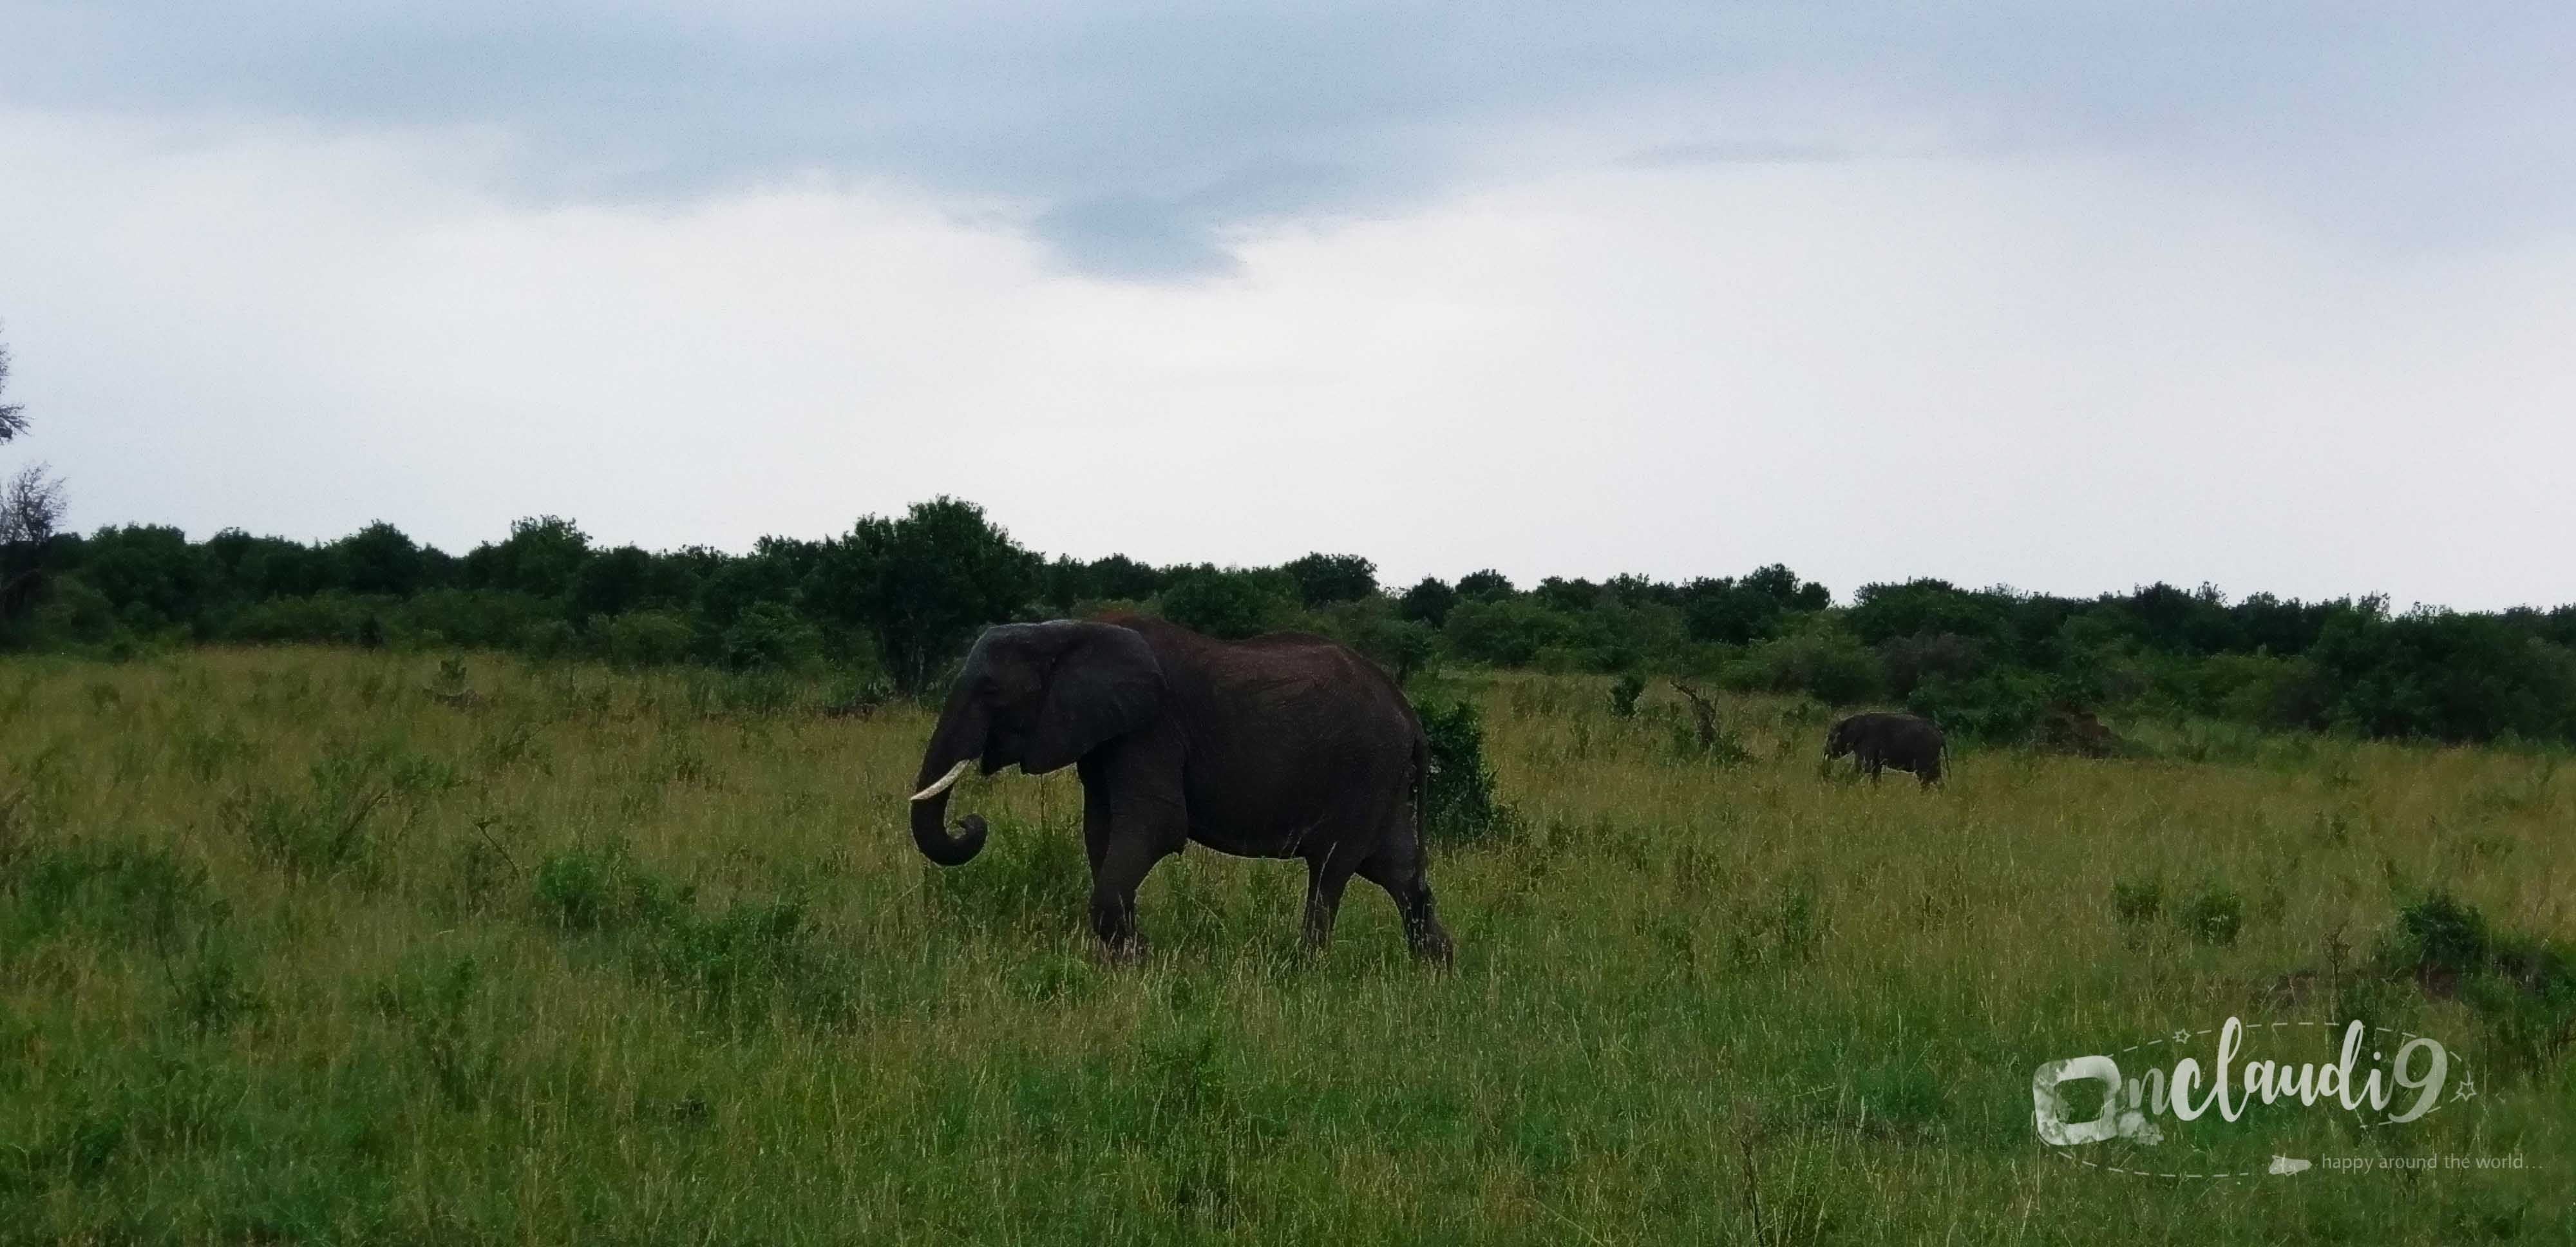 This is an Elephant at Maasai Mara National Park in Kenya.